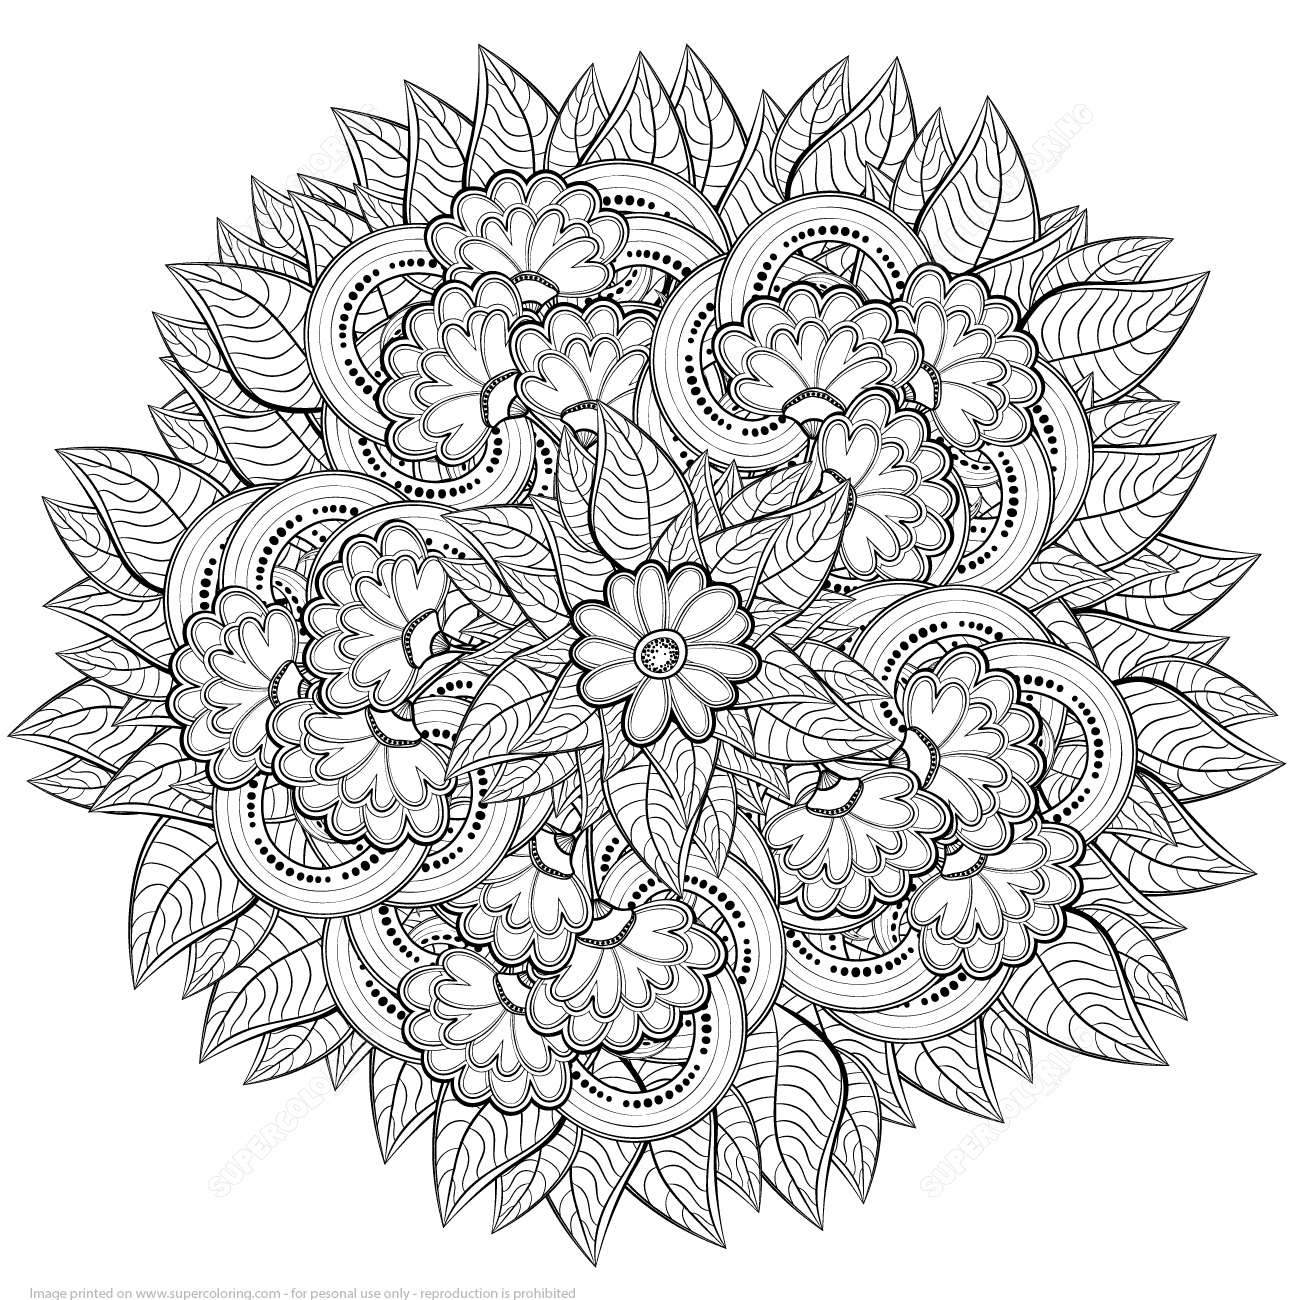 abstract coloring pages - abstract flowers design zentangle coloring page